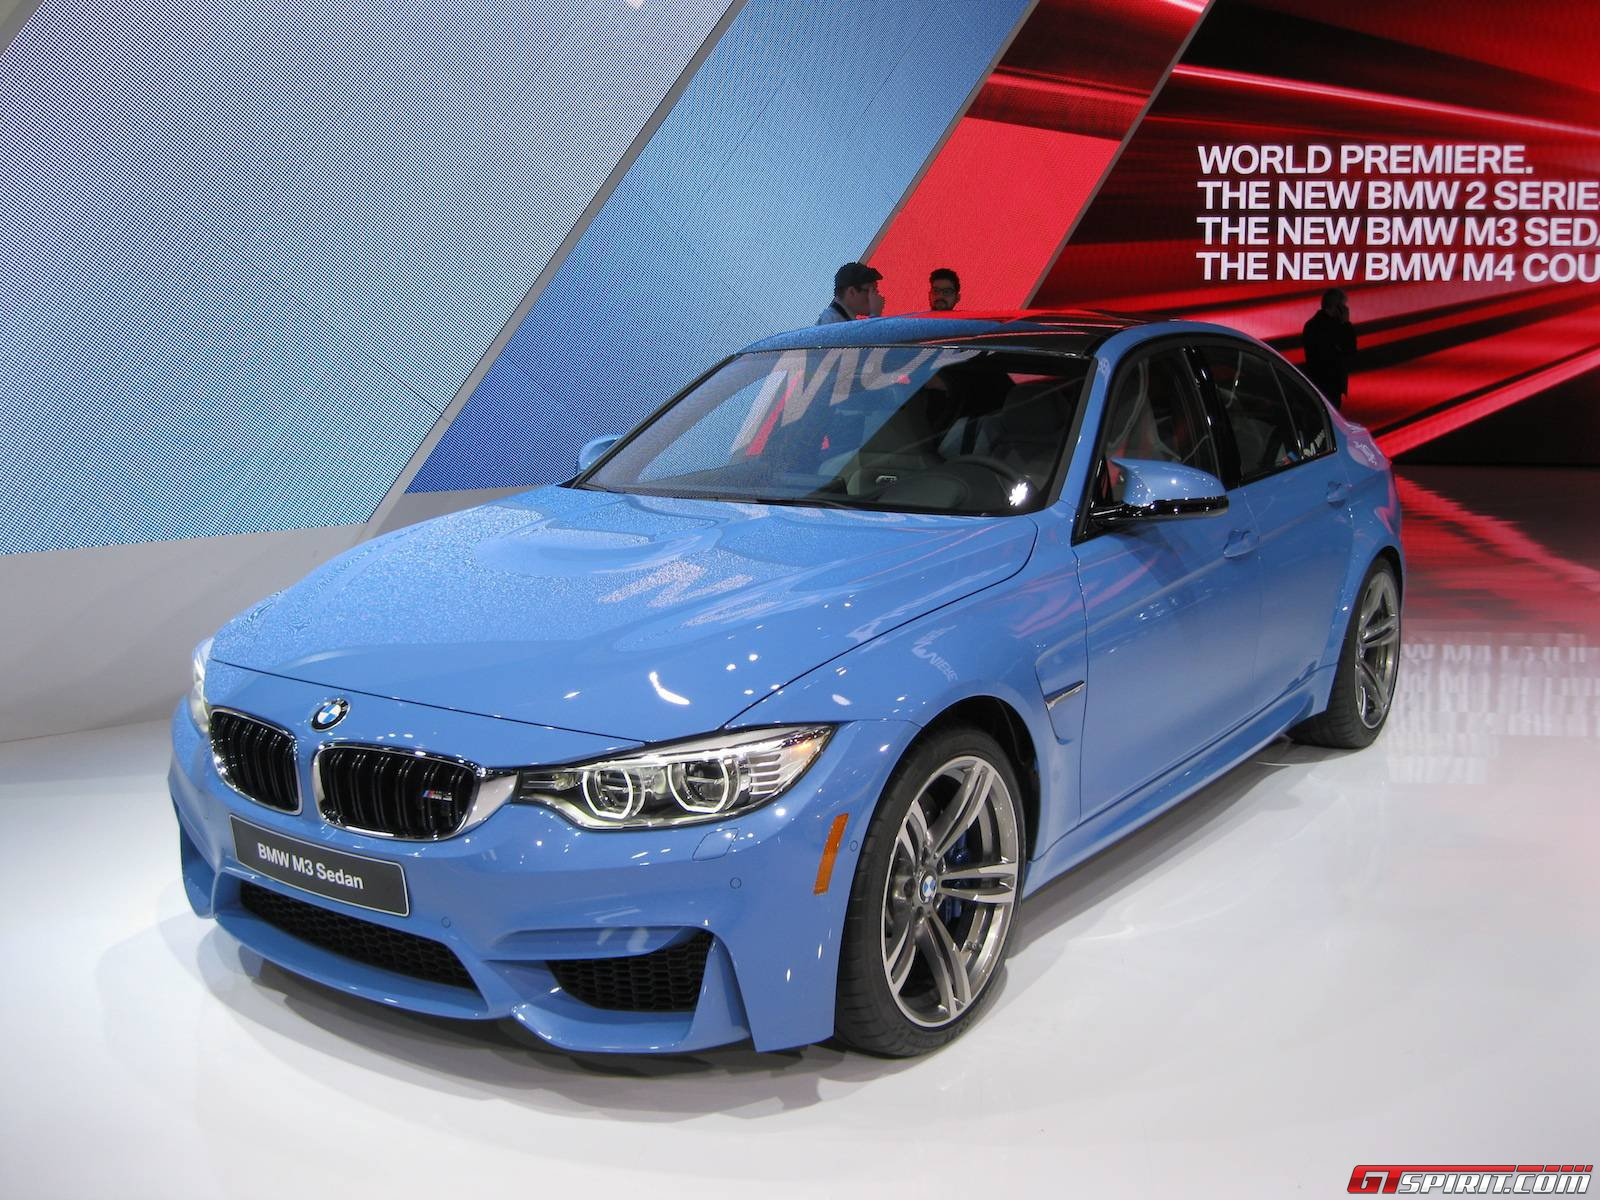 detroit 2014 bmw m3 sedan gtspirit. Black Bedroom Furniture Sets. Home Design Ideas